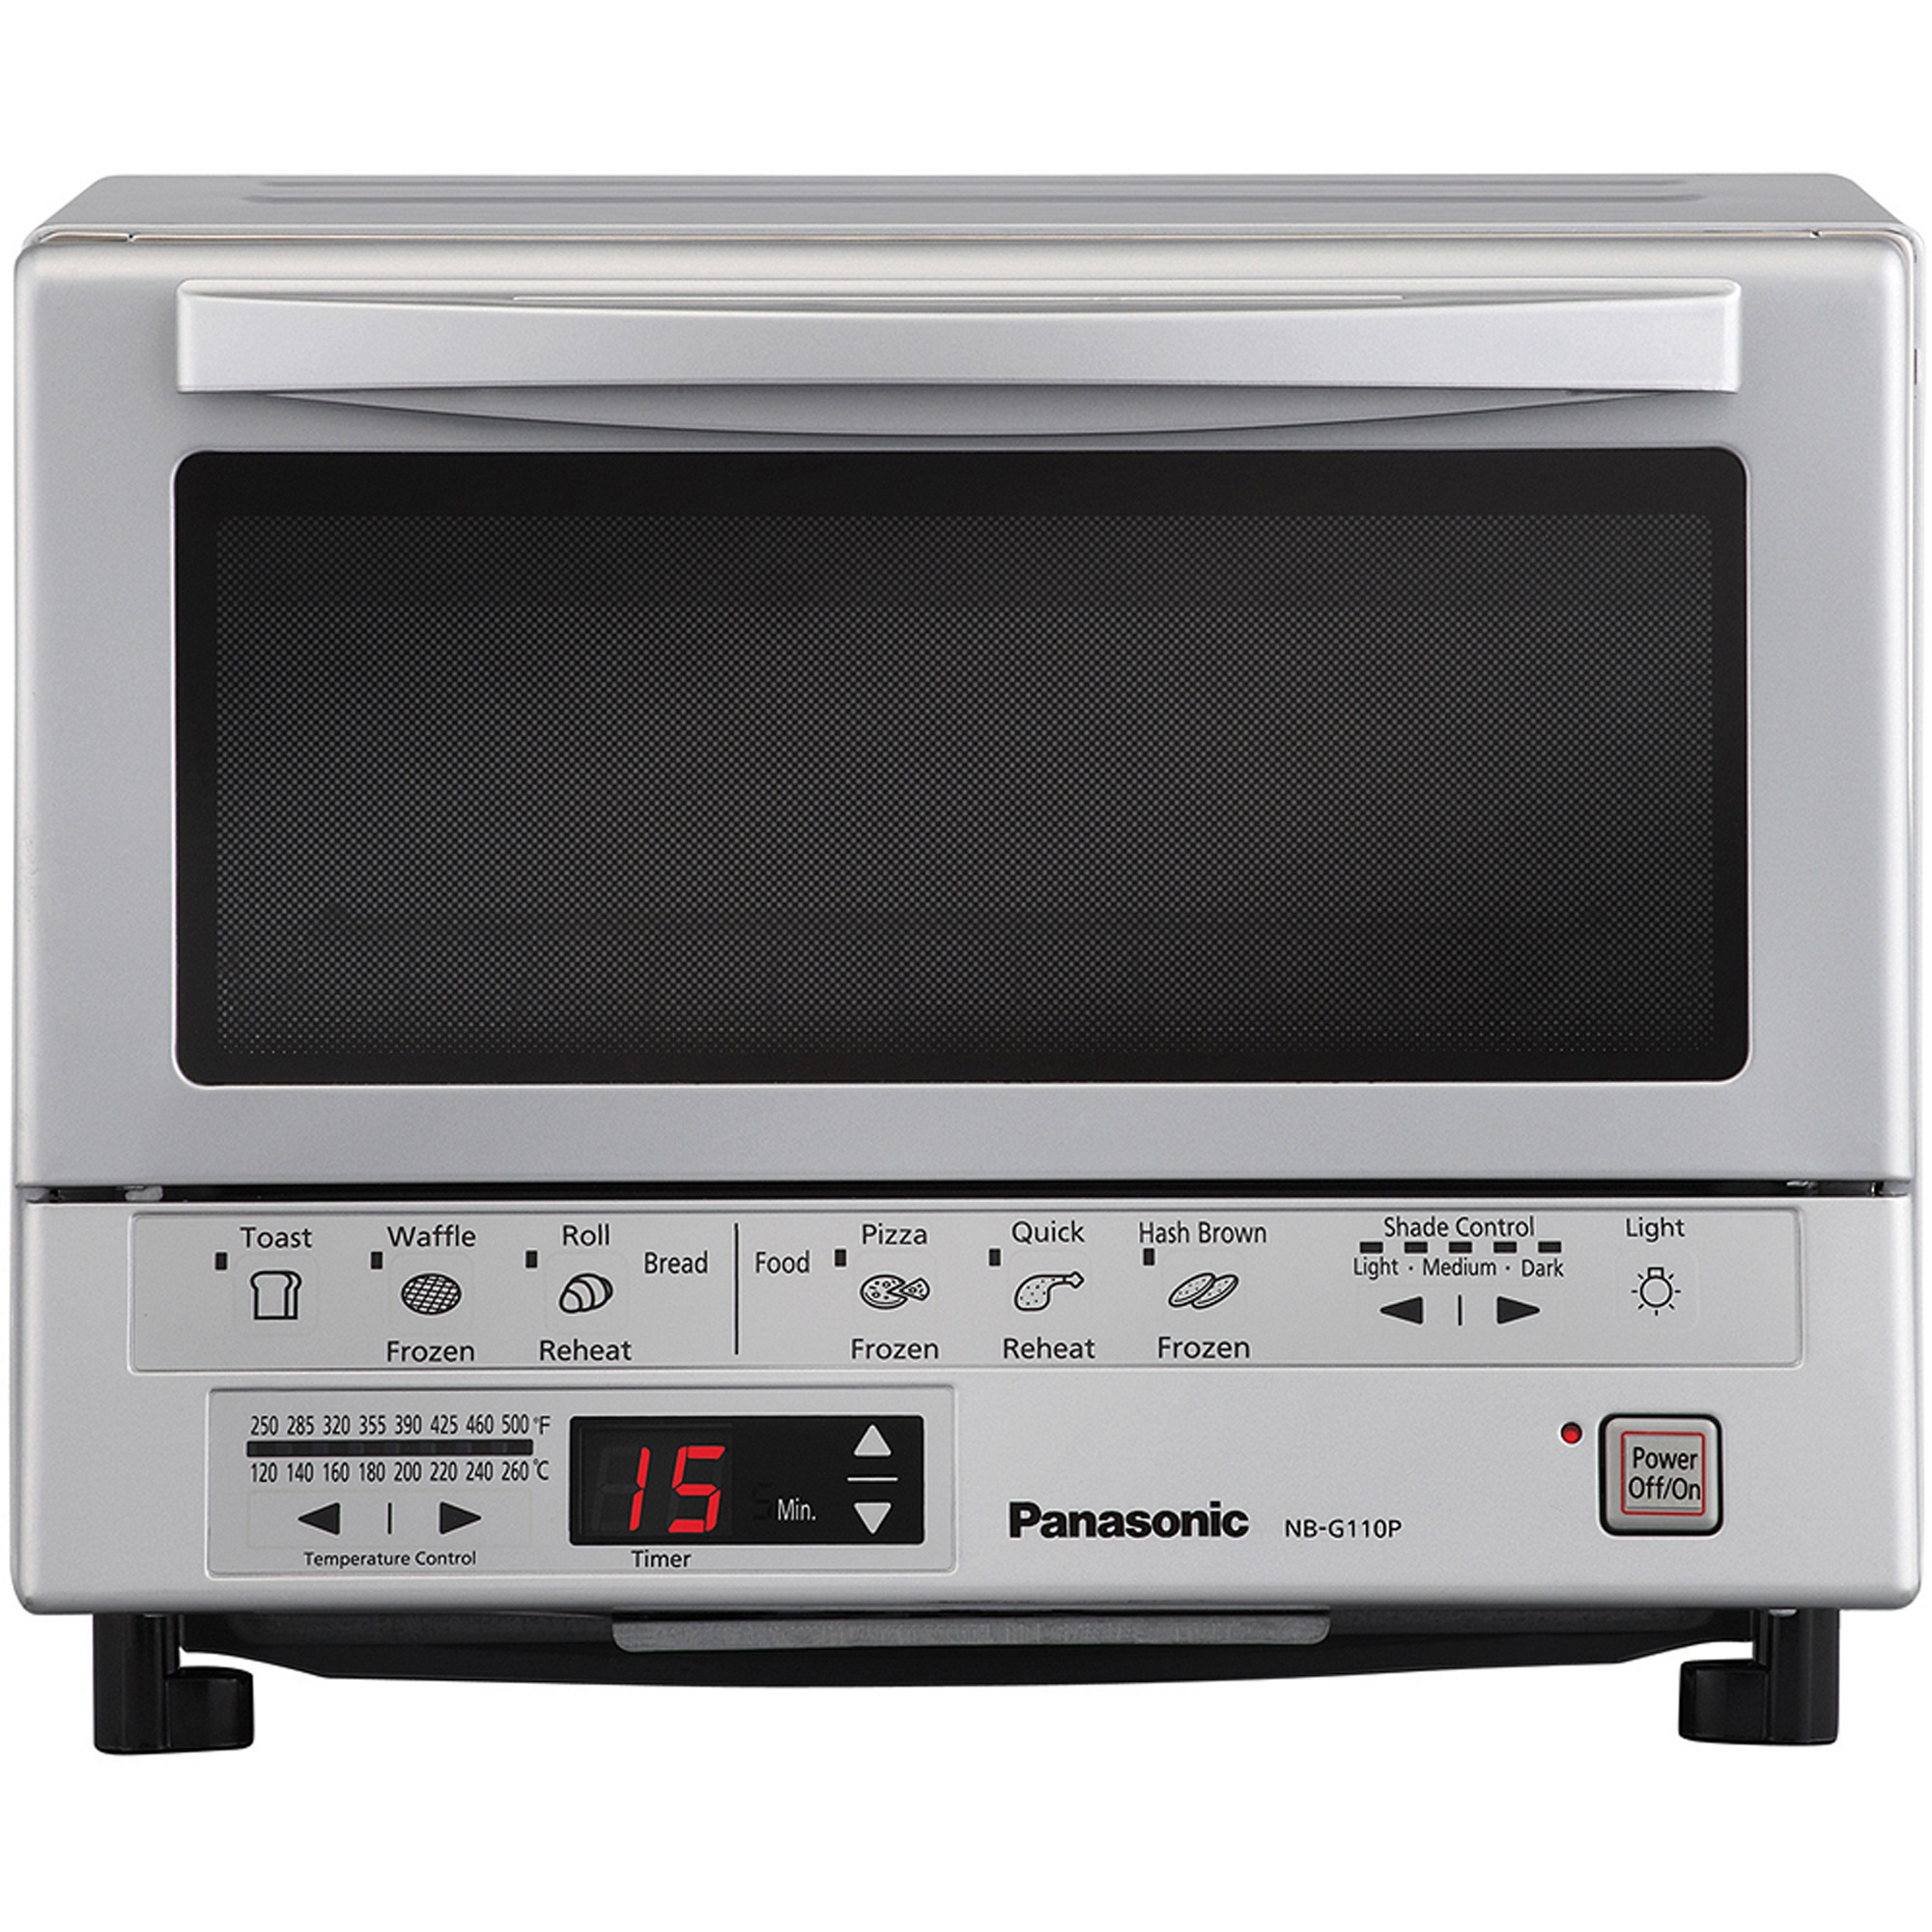 Panasonic FlashXpress Toaster Oven with Double Infrared Heating